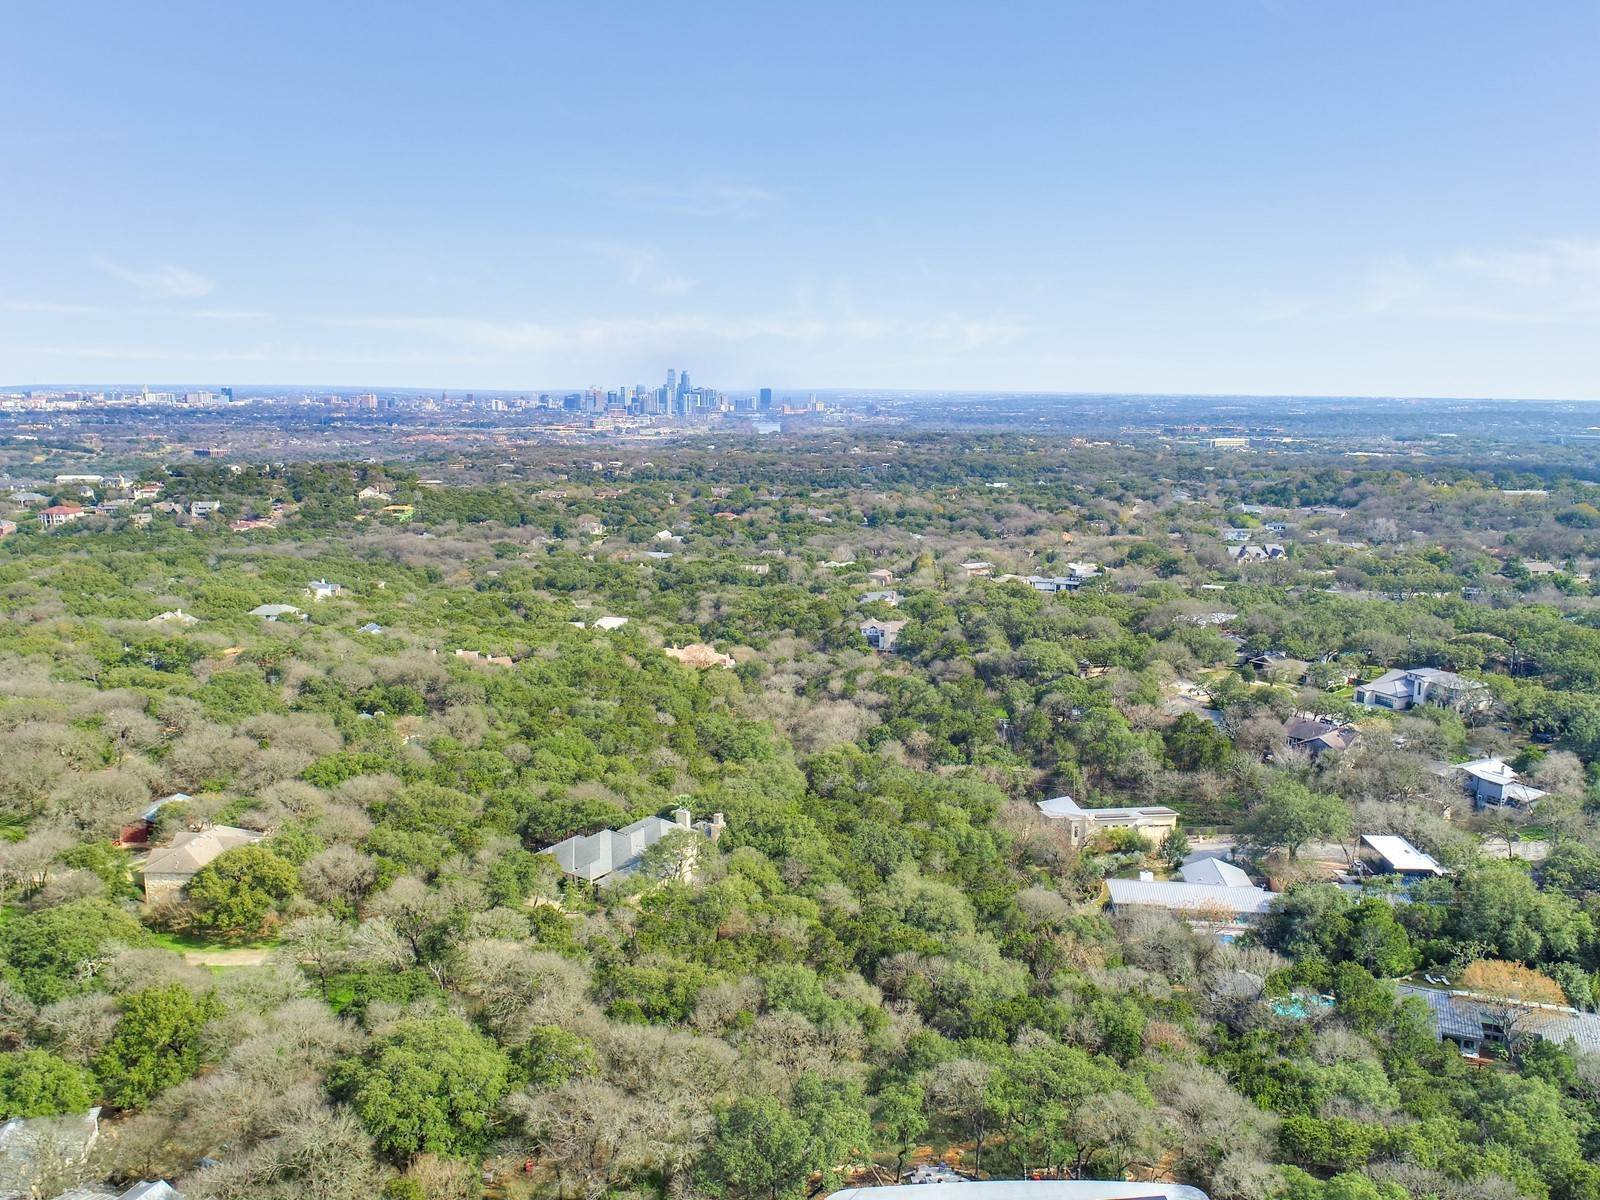 Land/Lot for Sale at 0 Rocky Ledge Austin, Texas,78746 United States